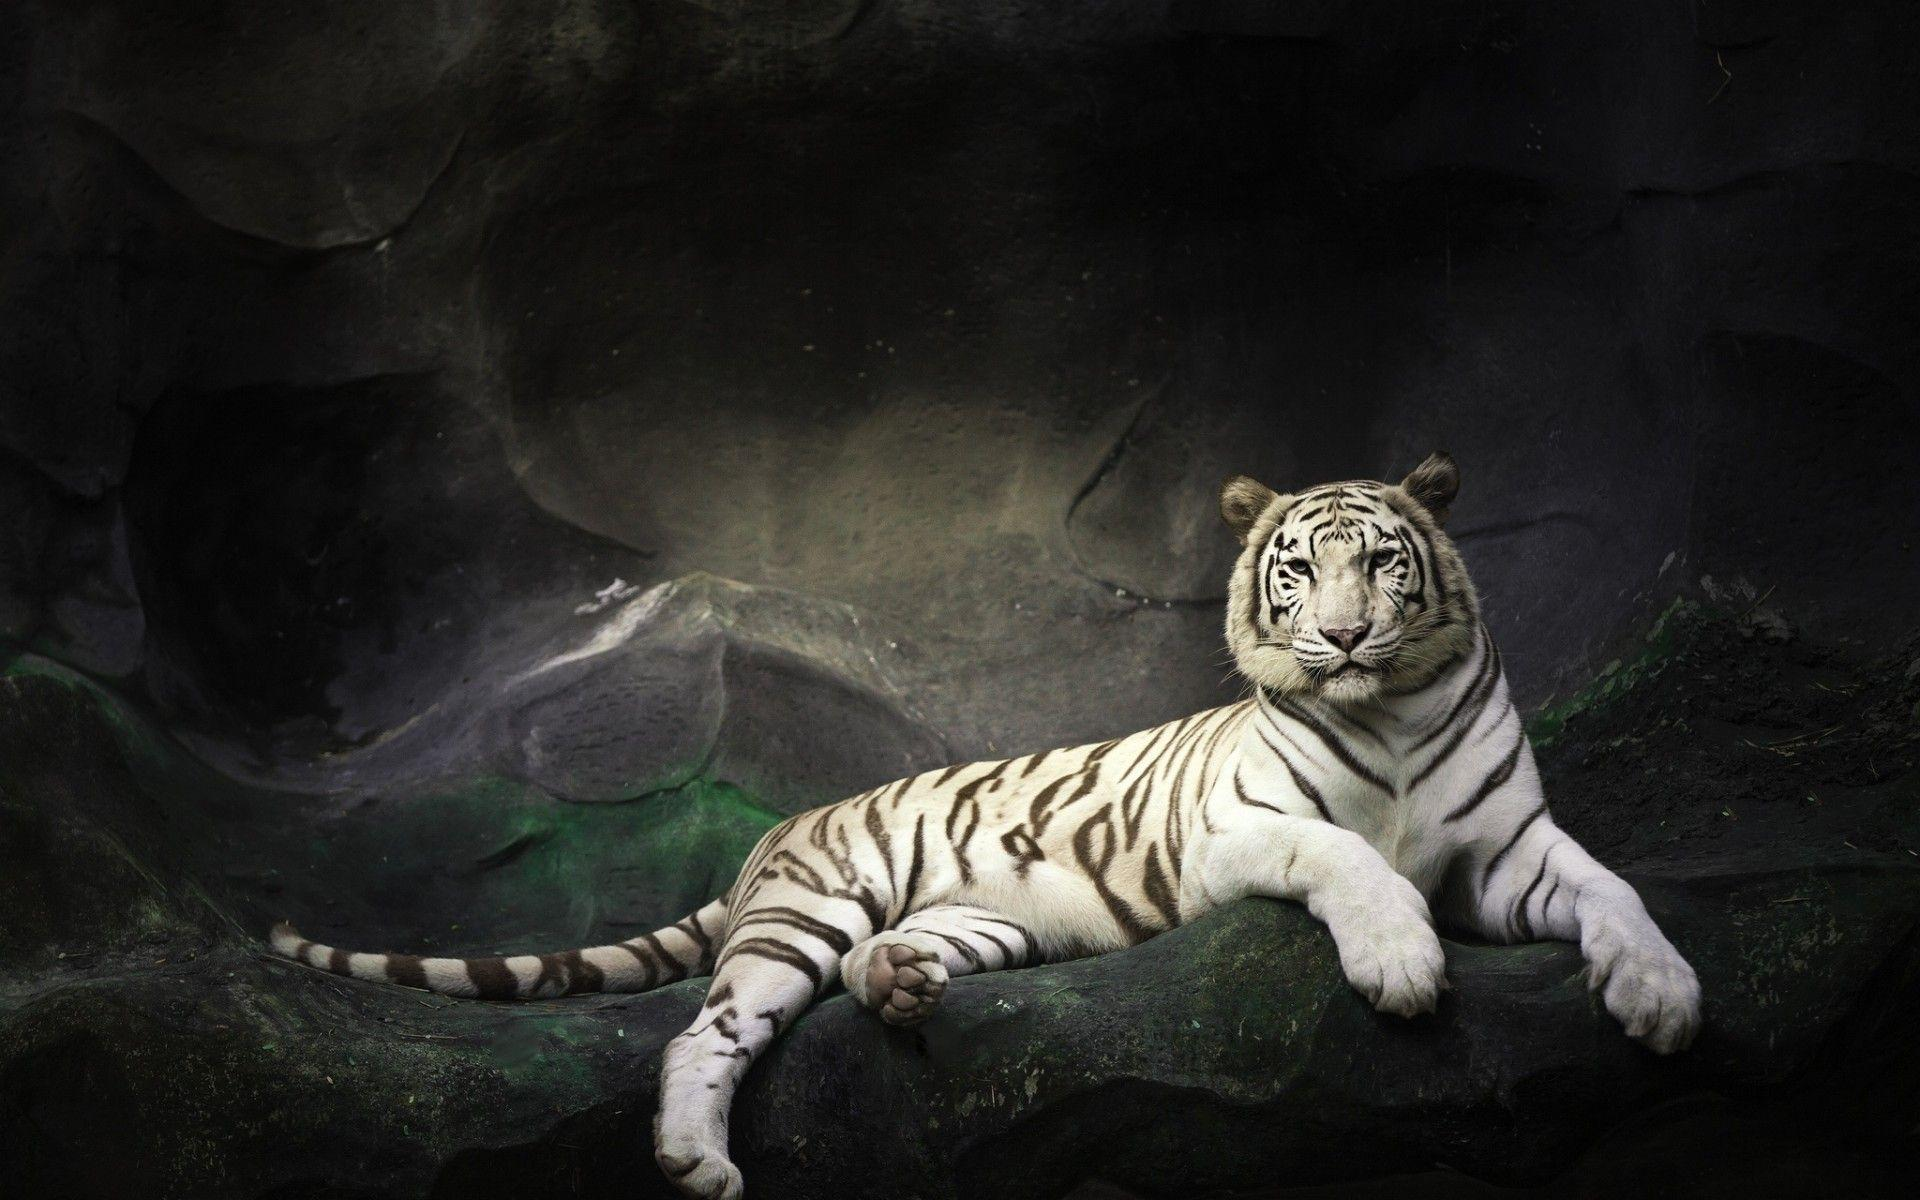 wallpaper hd white tiger - photo #12